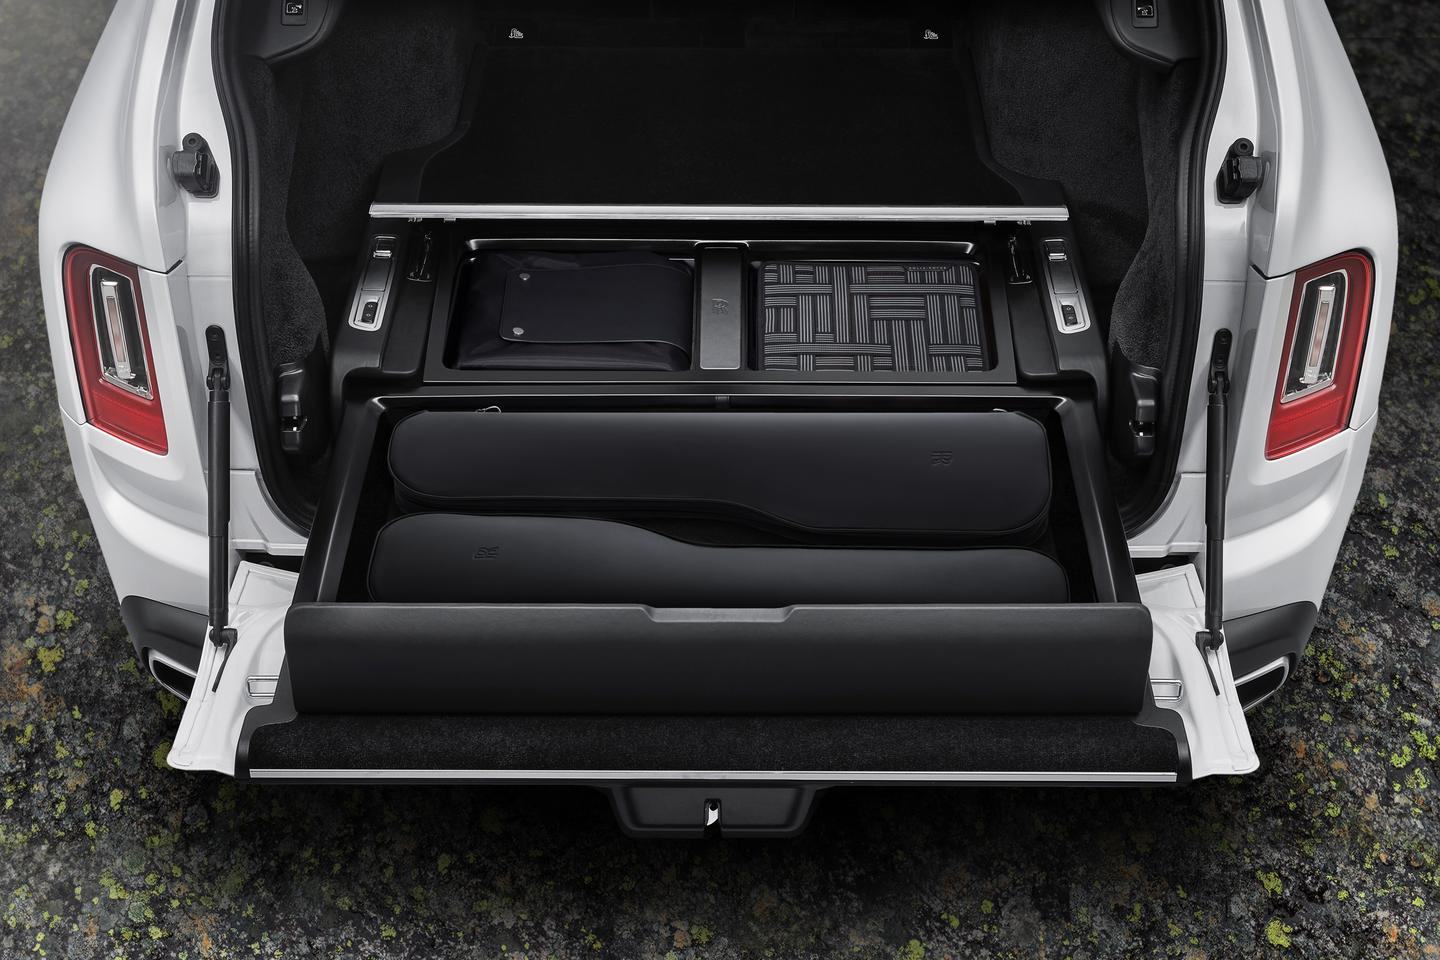 Buy the Pursuit Seat as a single or a pair and fit it neatly in the Cullinan Recreation Module